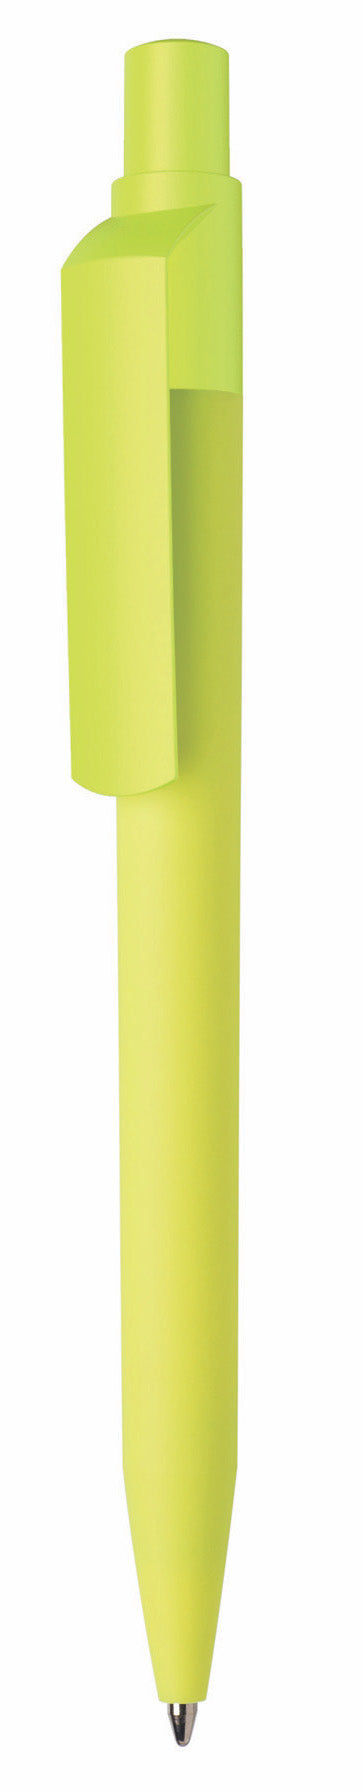 GS01 Neon Yellow Ball Point Pen